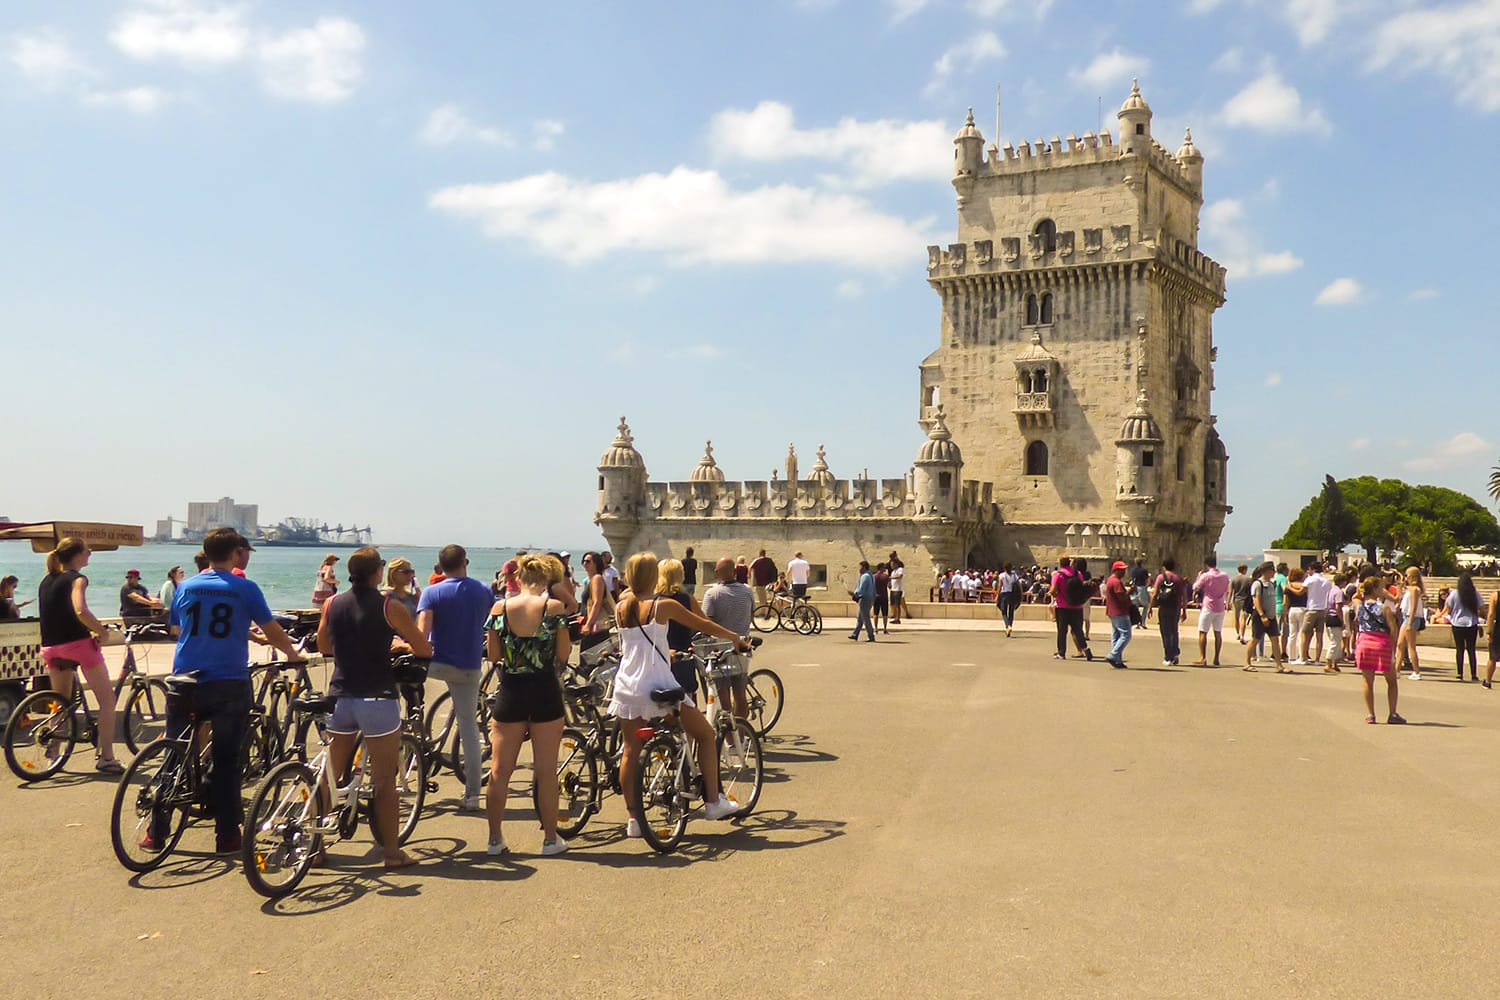 Crowd of tourists and people in bike tours around the Belem Tower, popular landmark in Lisbon, Portugal